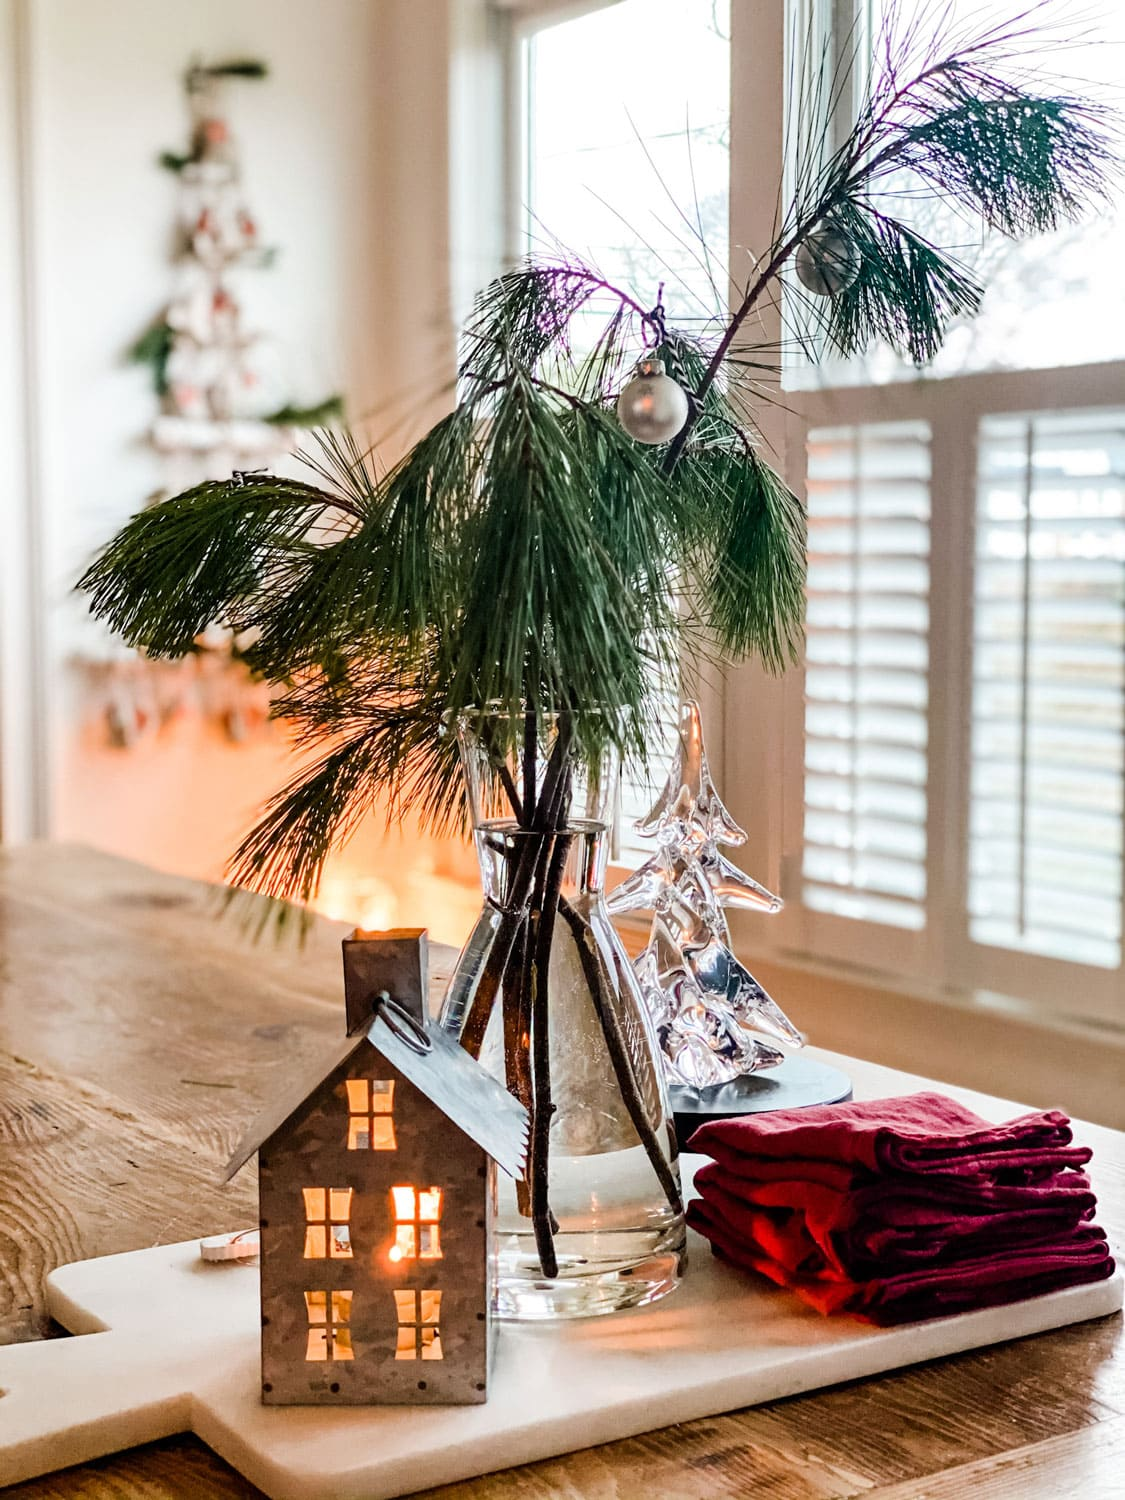 small holiday decorations on table